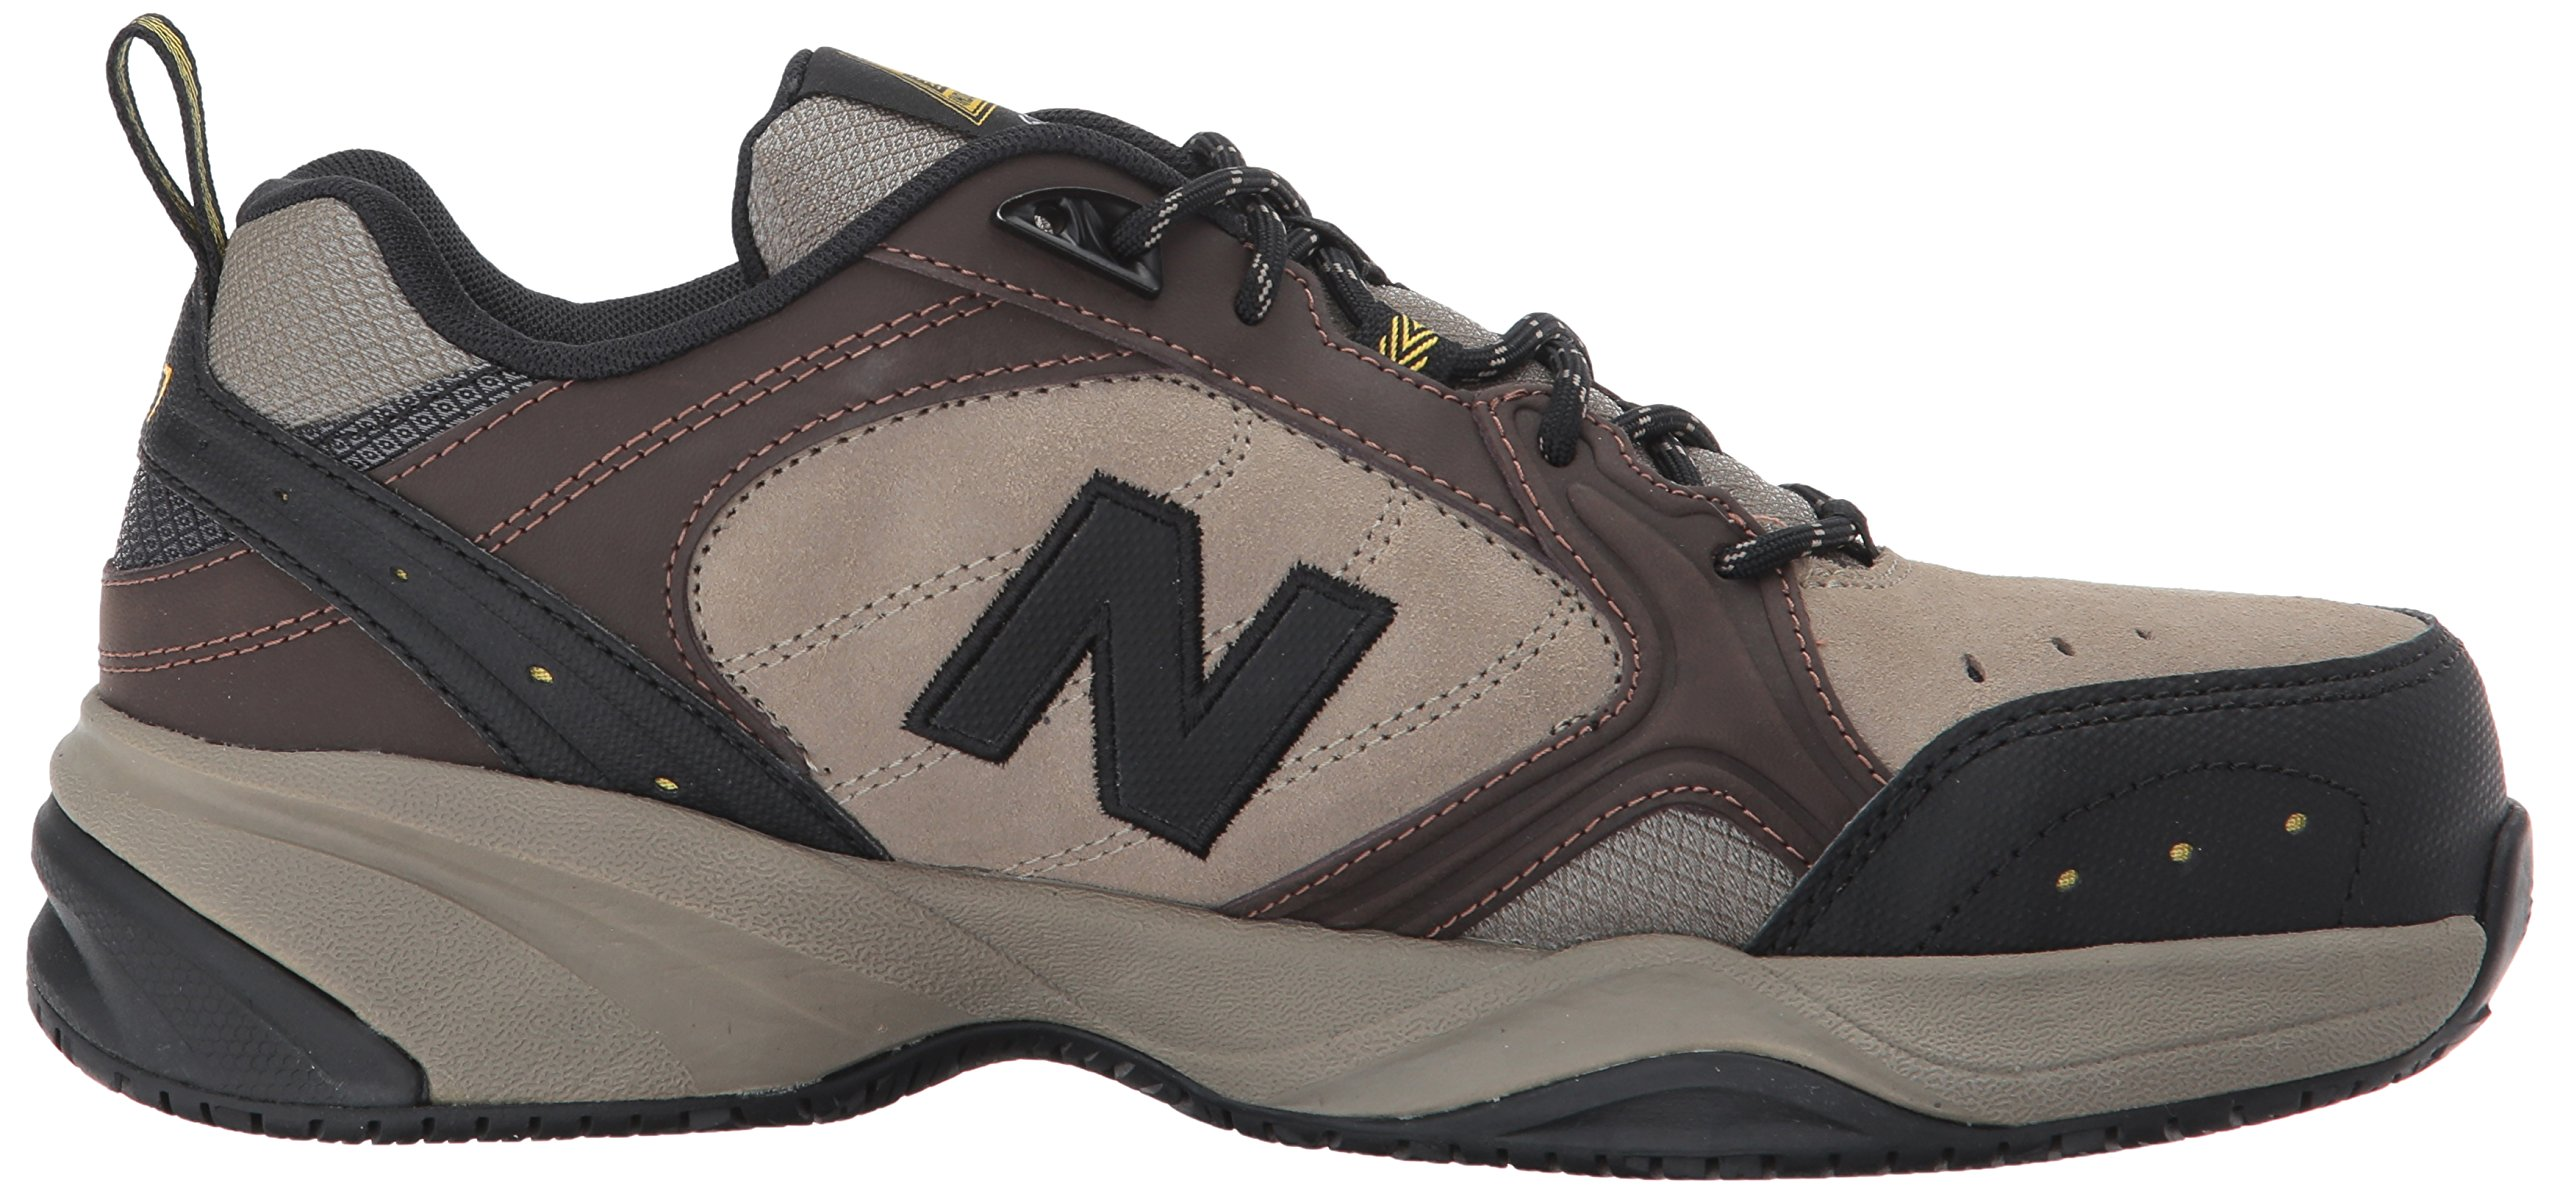 New Balance Men's MID627 Steel-Toe Work Shoe,Brown,18 4E US by New Balance (Image #7)